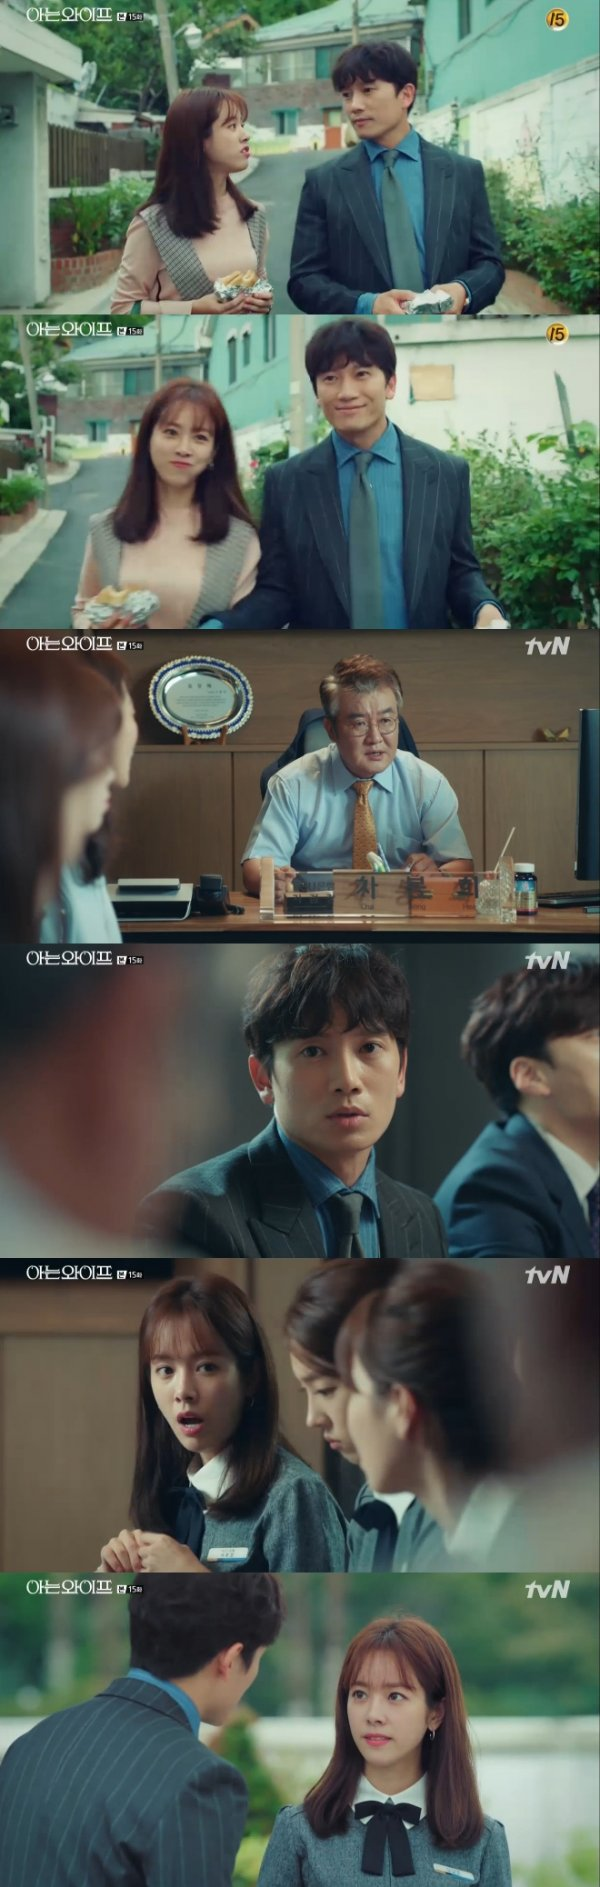 <p>Ji Sung and Han Ji-min failed to disclose the fact of association.</p><p>On the 19th tvN waterworks drama Knowing Wipe (Screenwriter Yang Hui-yang Directorate Lee Sang-yop) In the 15th, you know the fact of association to the bank point Failure Next Ju Hyuk (Ji Sung) and So · Uzin (Han Ji- min) was drawn.</p><p>This day Joo Hyuk and Uzin were trying to inform people of the fact of dating. However, these plans shifted. Son Jong-hak (Point) suddenly published an act that tried to record two people at the seat of a past drinking party. Others suddenly Apple to Apple. Only Yoon Jeong-hoo (Cha-teng group) who knows the fact of their relationship.</p><p>Ultimately Joo Hyuk and Uzin decided to love this Jungan secret love.</p>